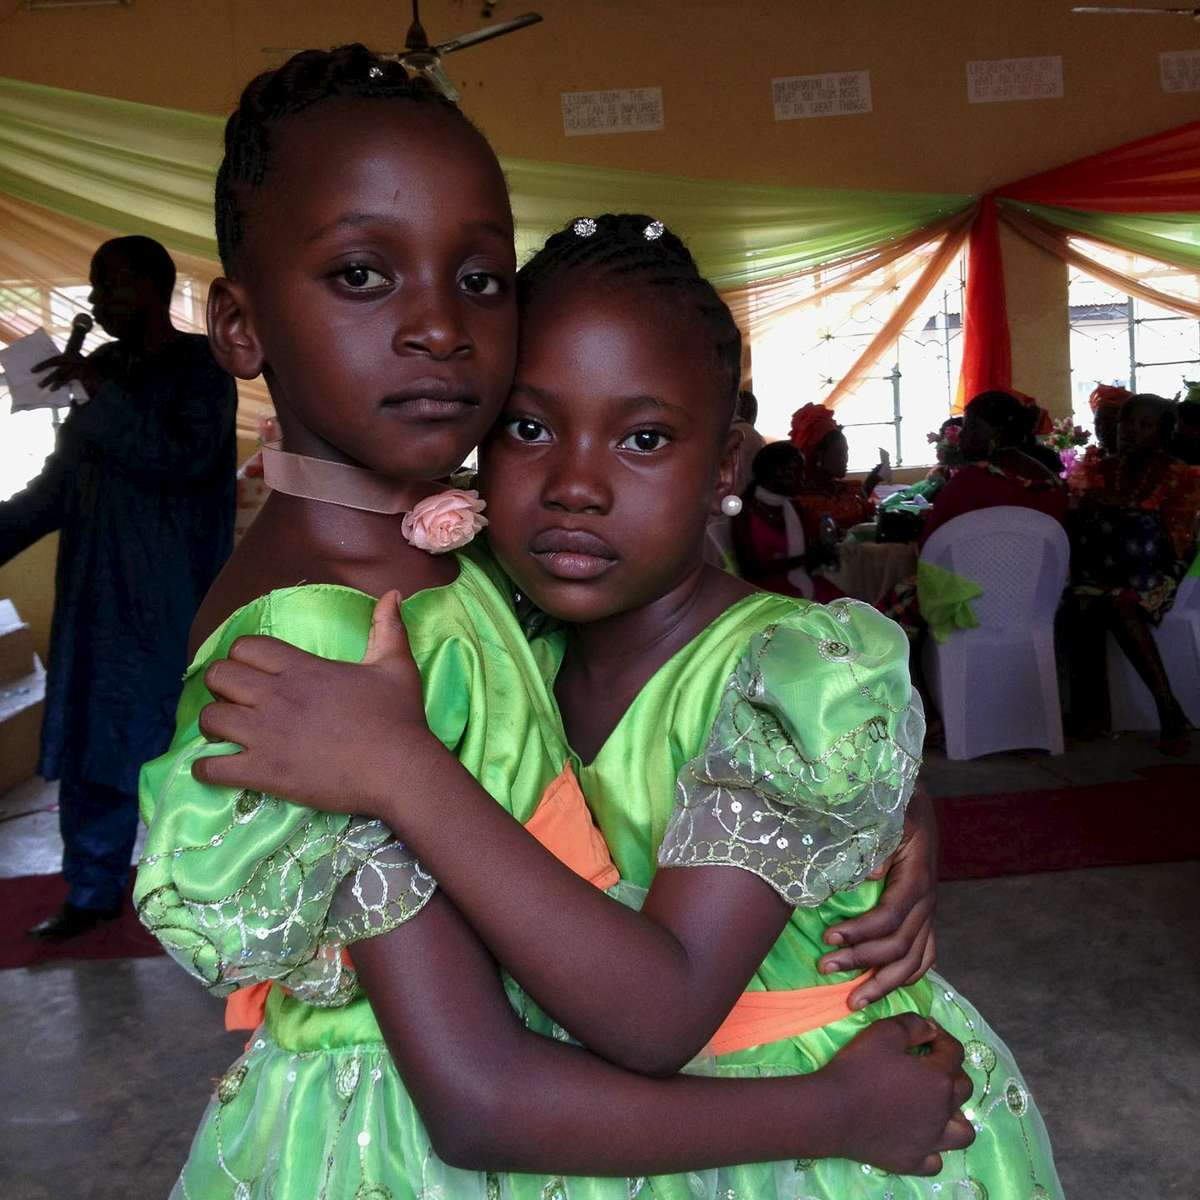 Wedding friends. Jos, Central Nigeria. April 2013.